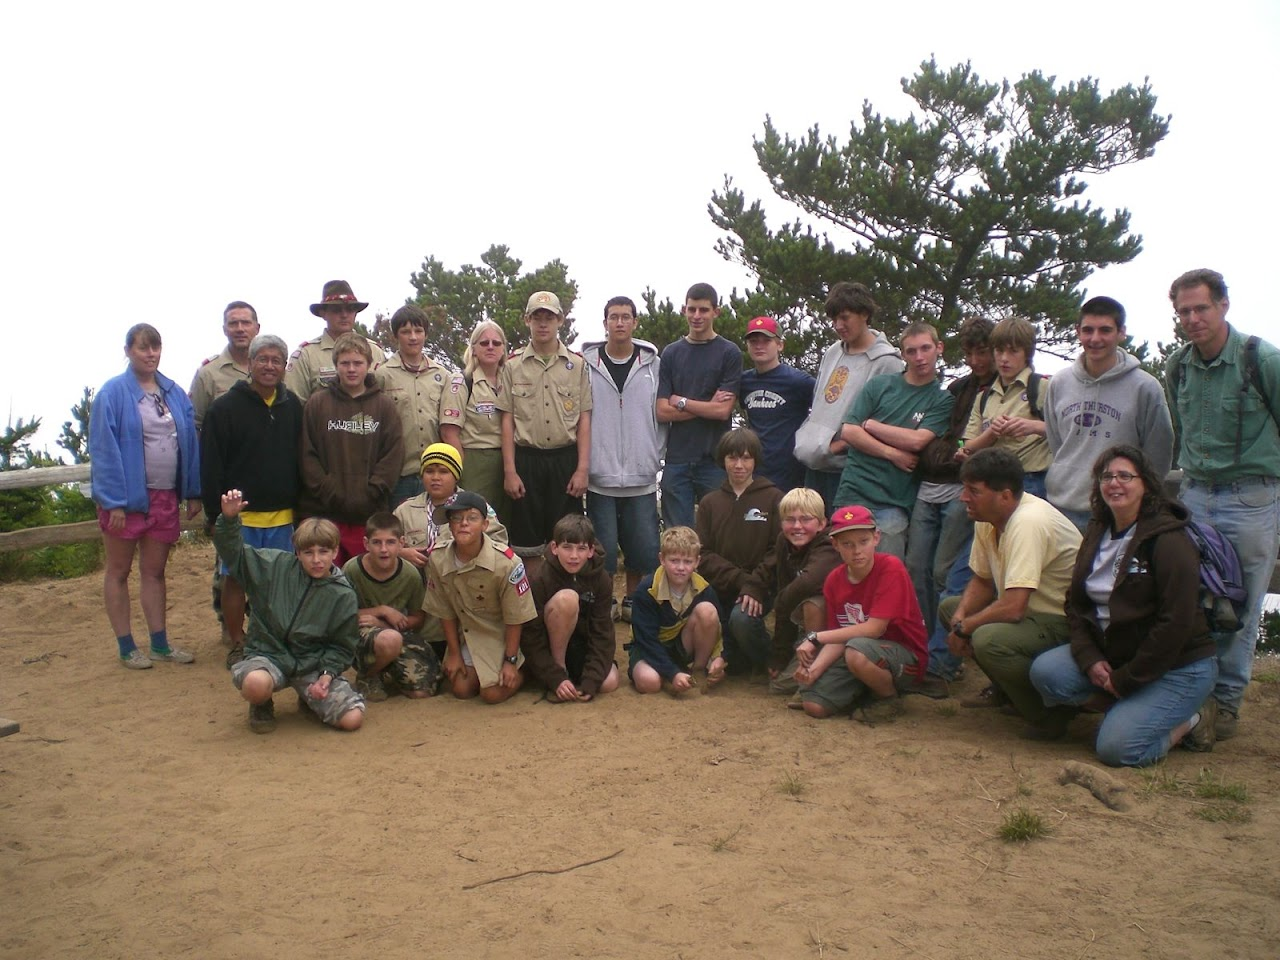 Camp Meriwether 2008 - 2008%7E08%7E10 Camp Meriwether 61.JPG